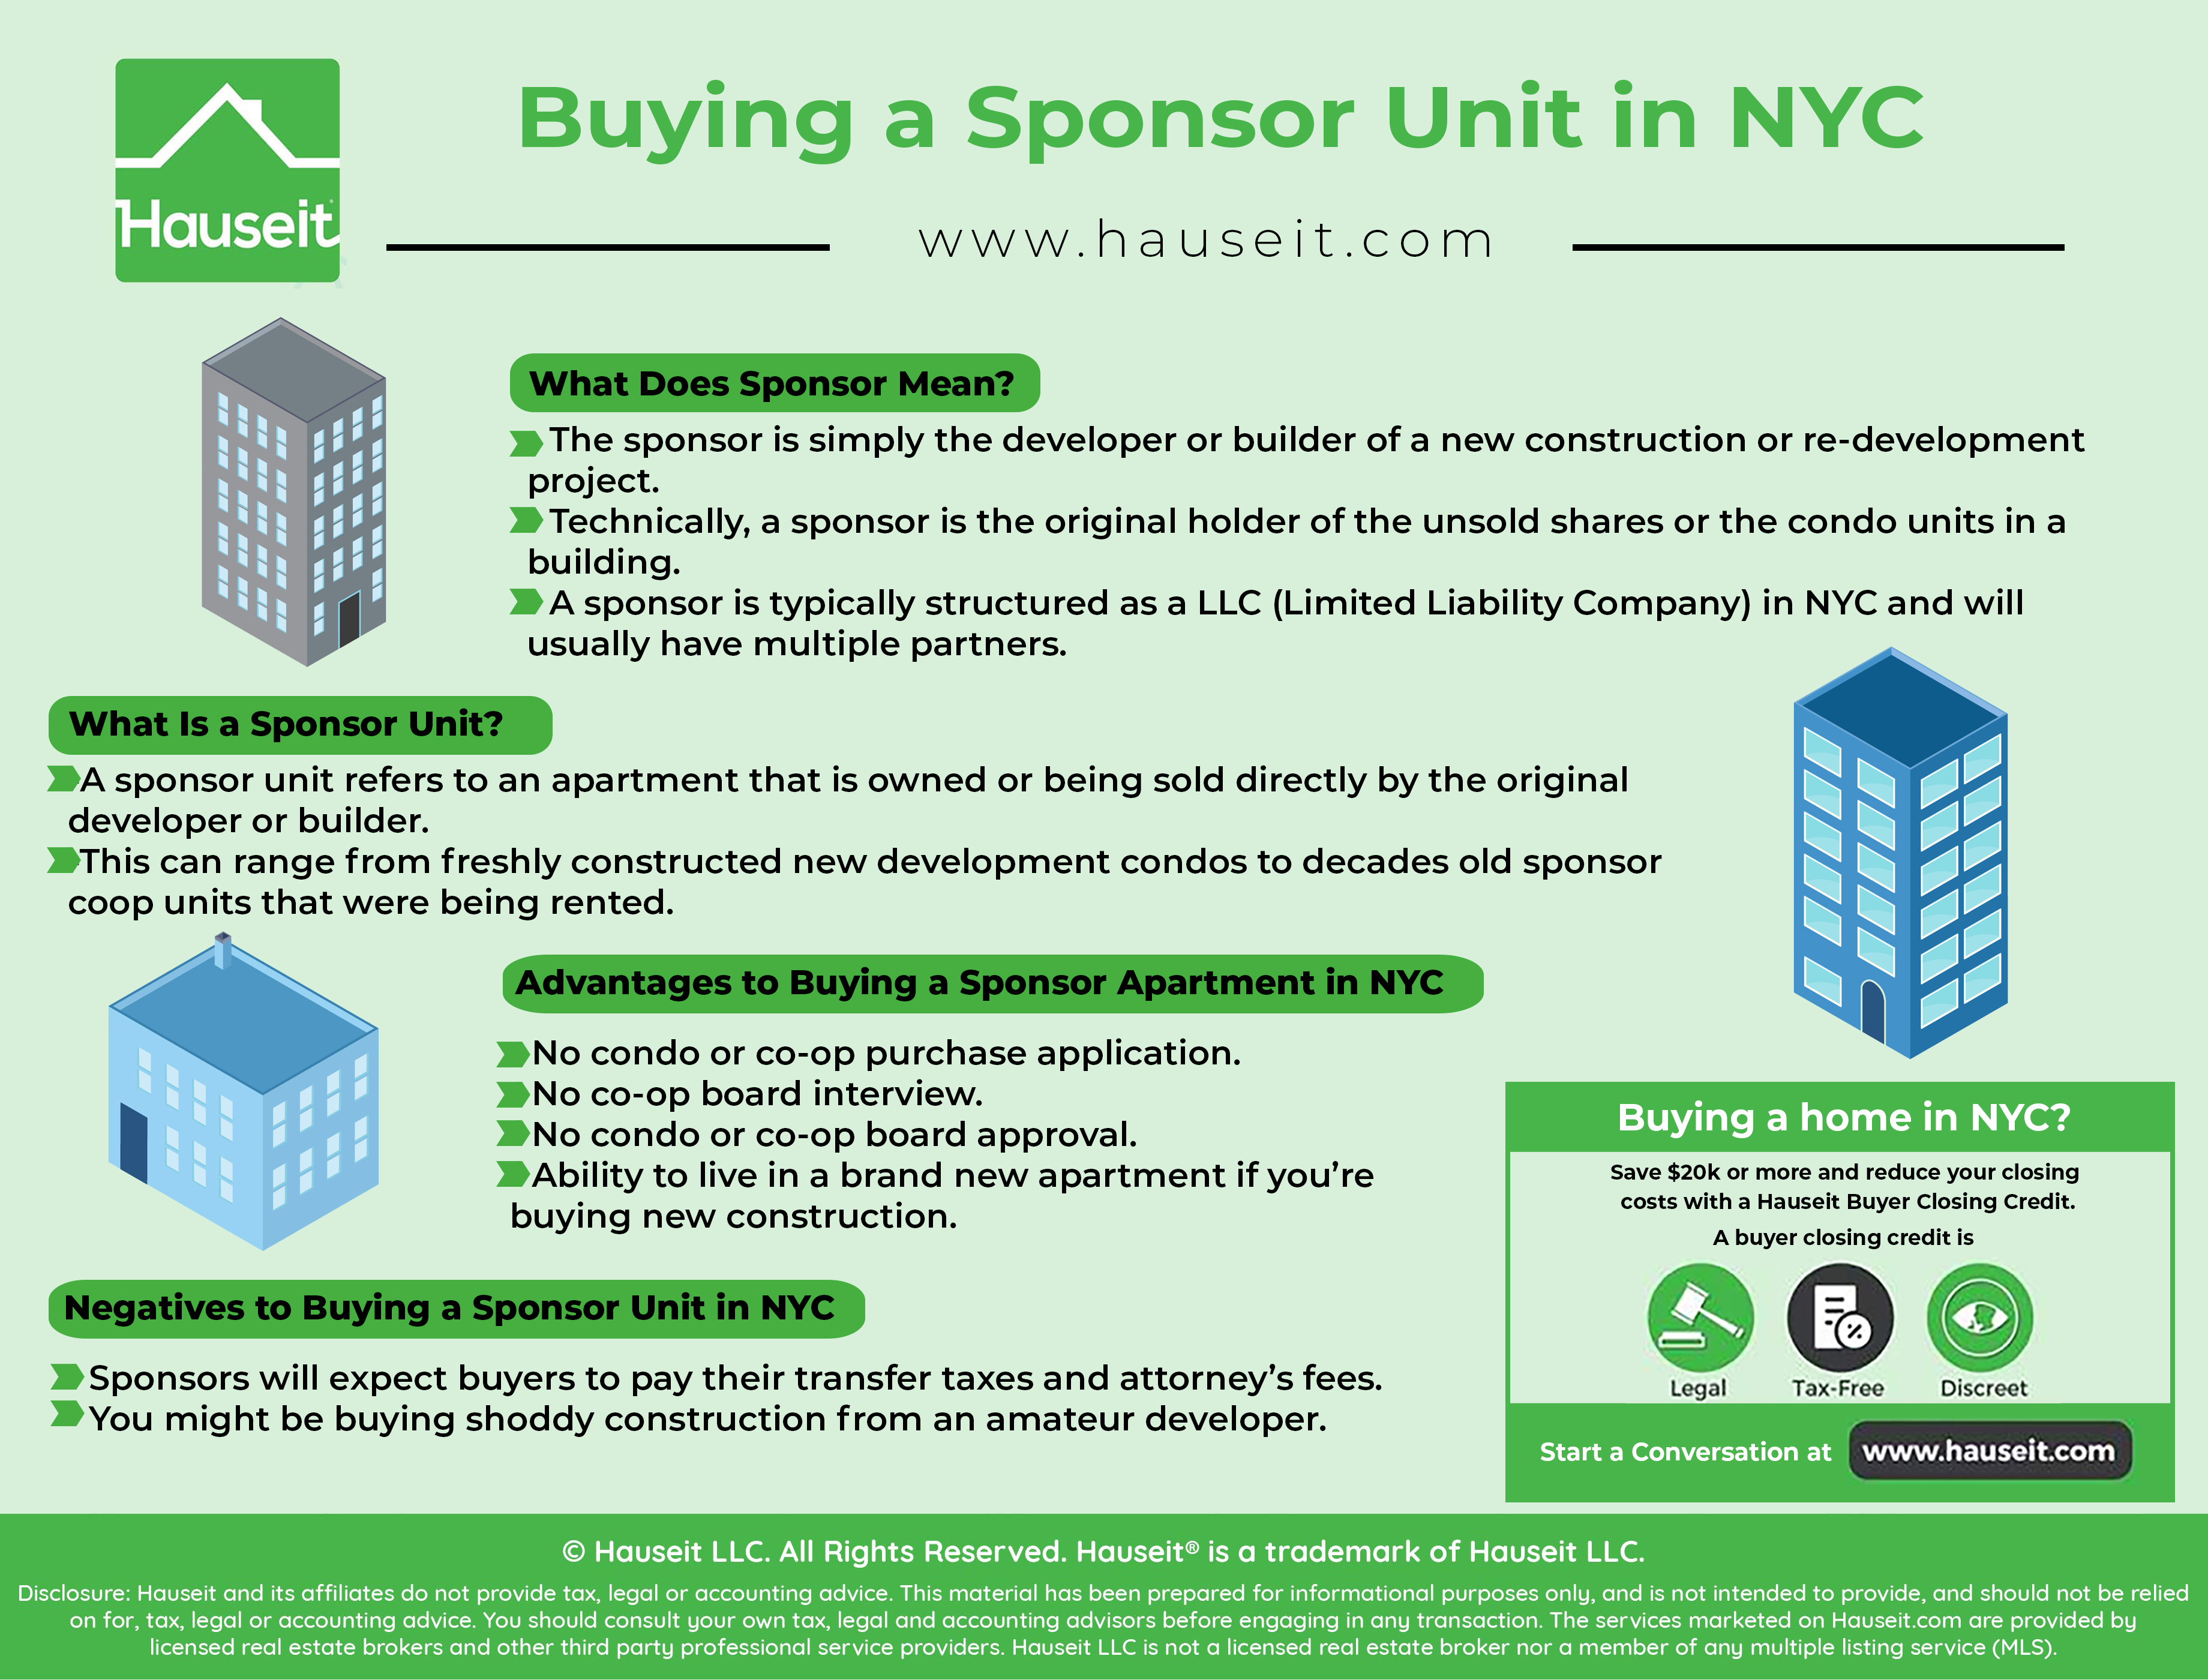 A sponsor unit refers to an apartment that is owned or being sold directly by the original developer or builder.